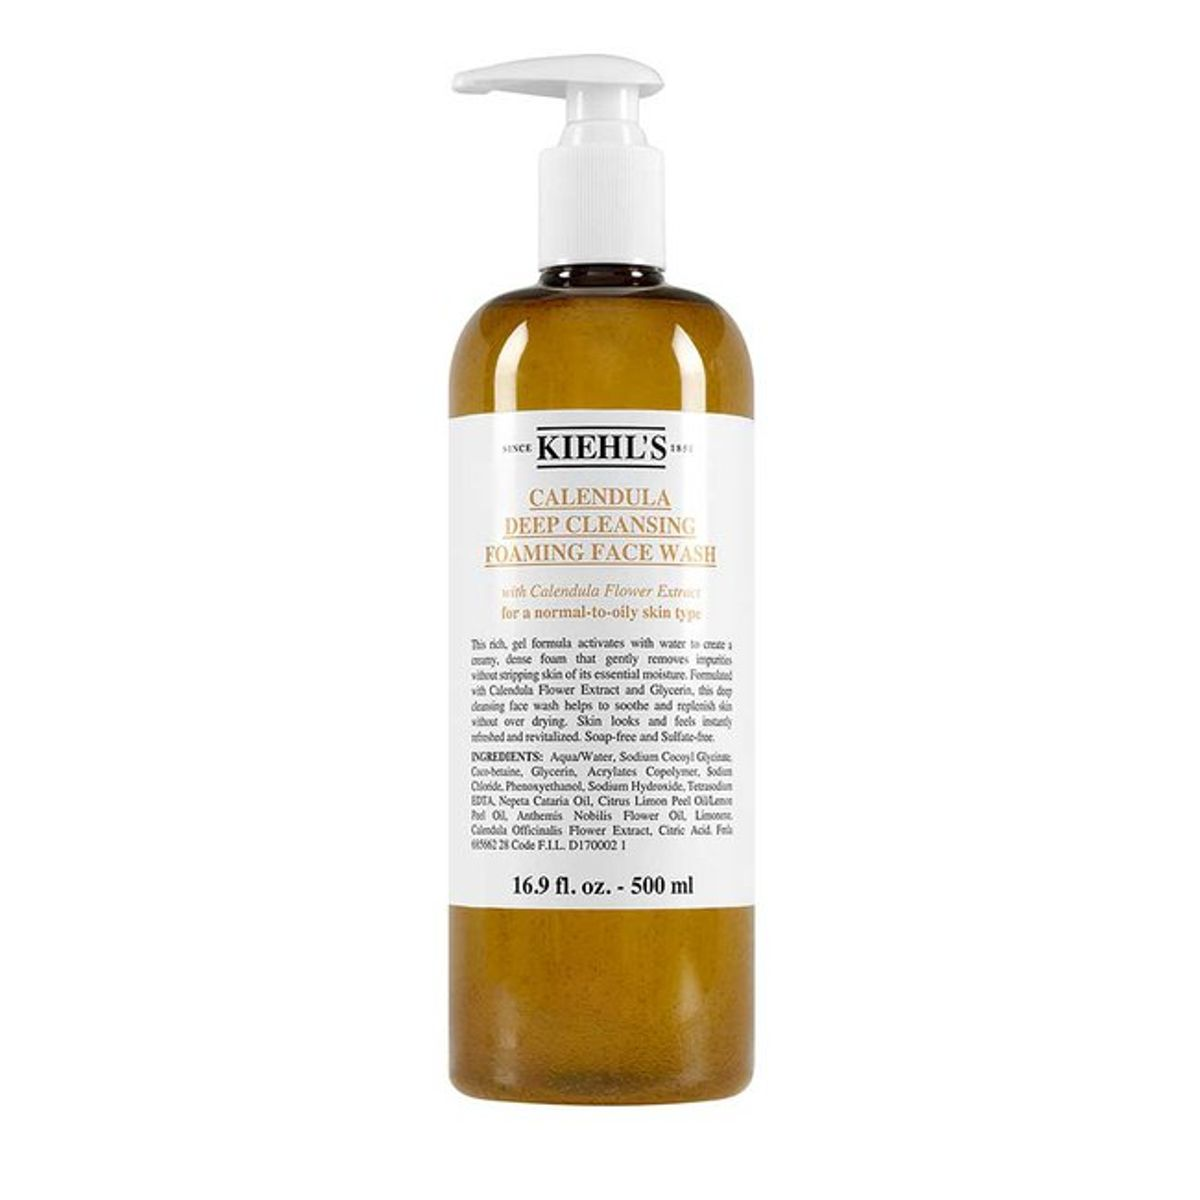 KIEHL'S Calendula Deep Cleanser Foaming Face Wash